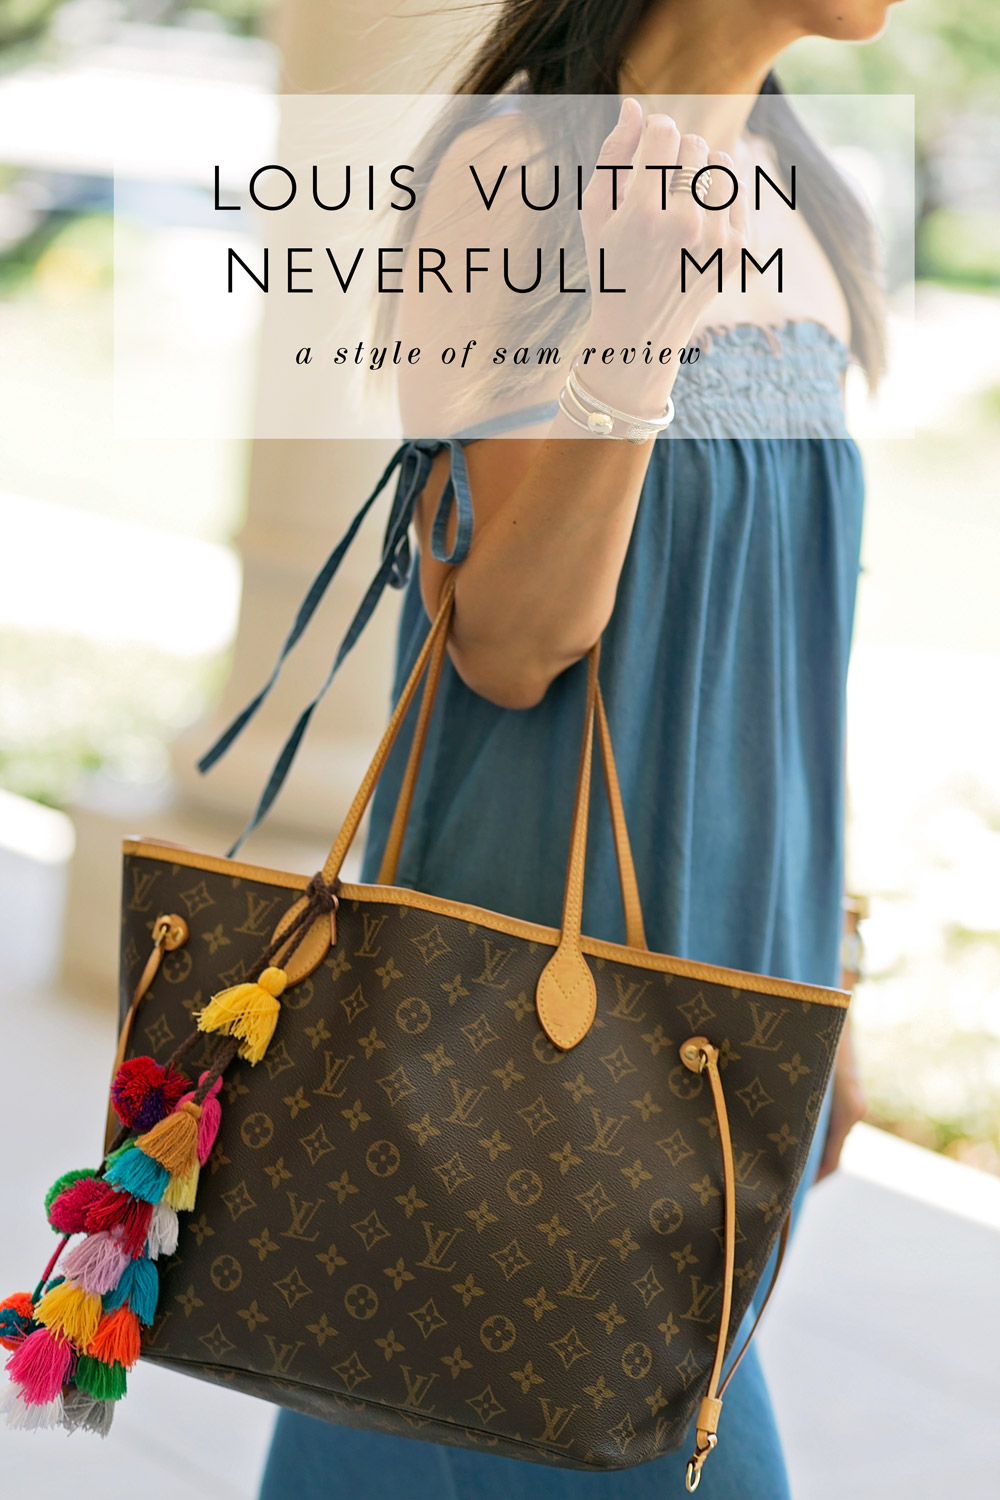 494f06a8fdc6 LV Neverfull MM bag review